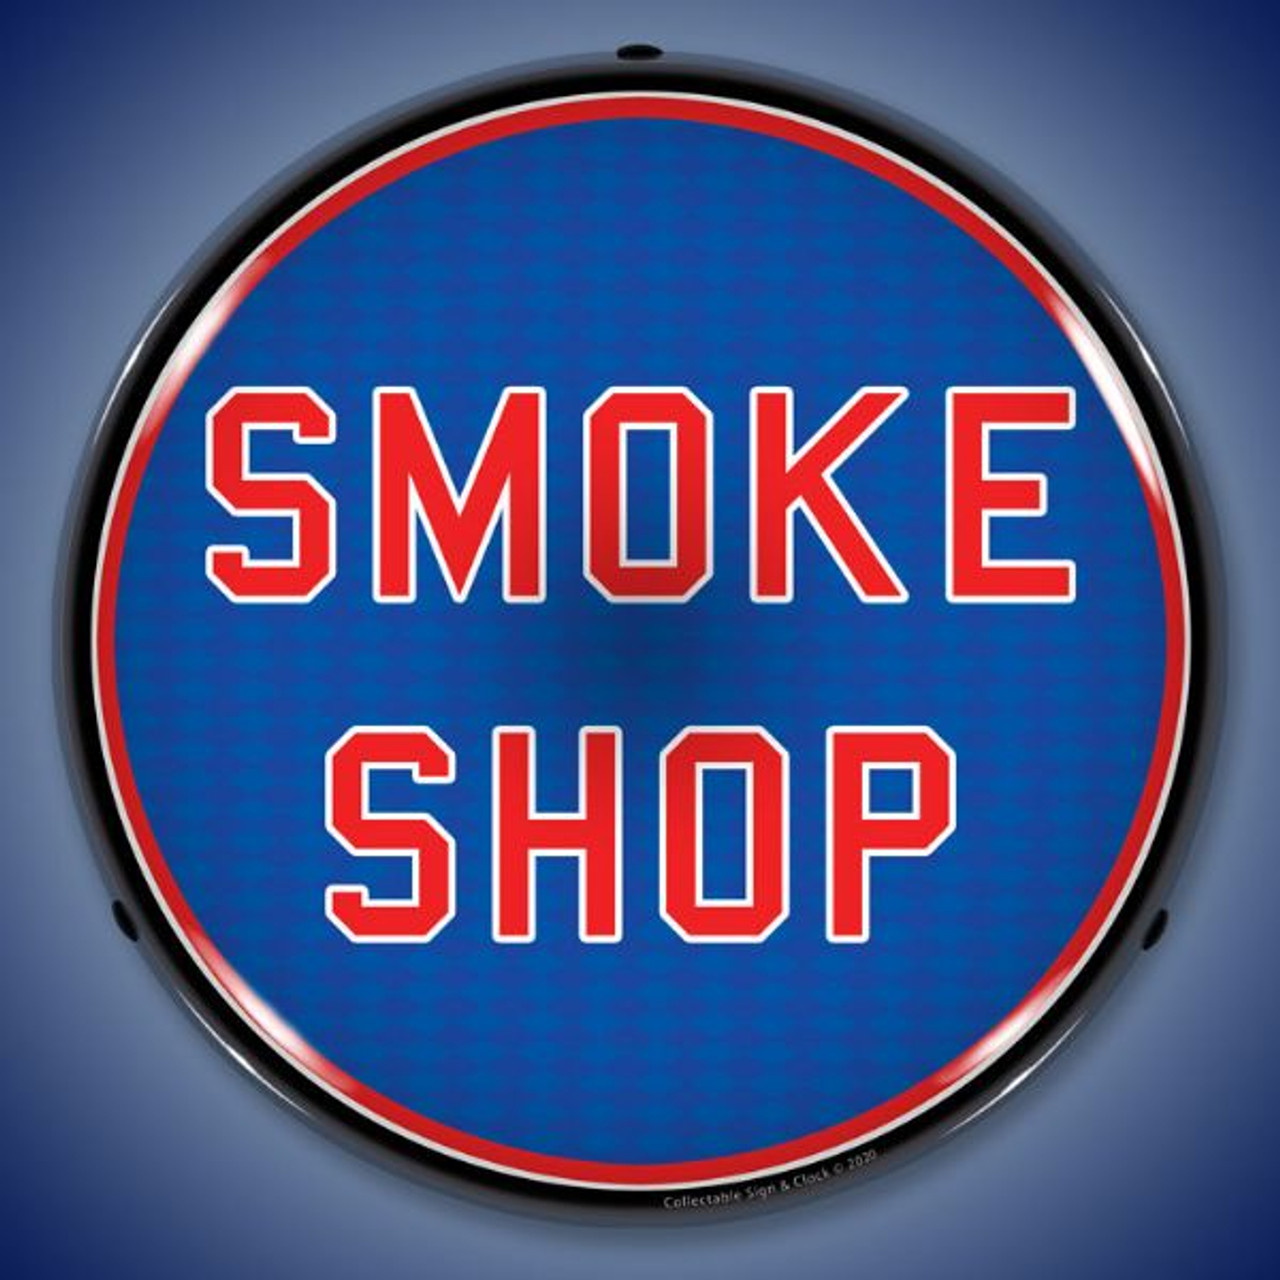 Smoke Shop LED Lighted Business Sign 14 x 14 Inches